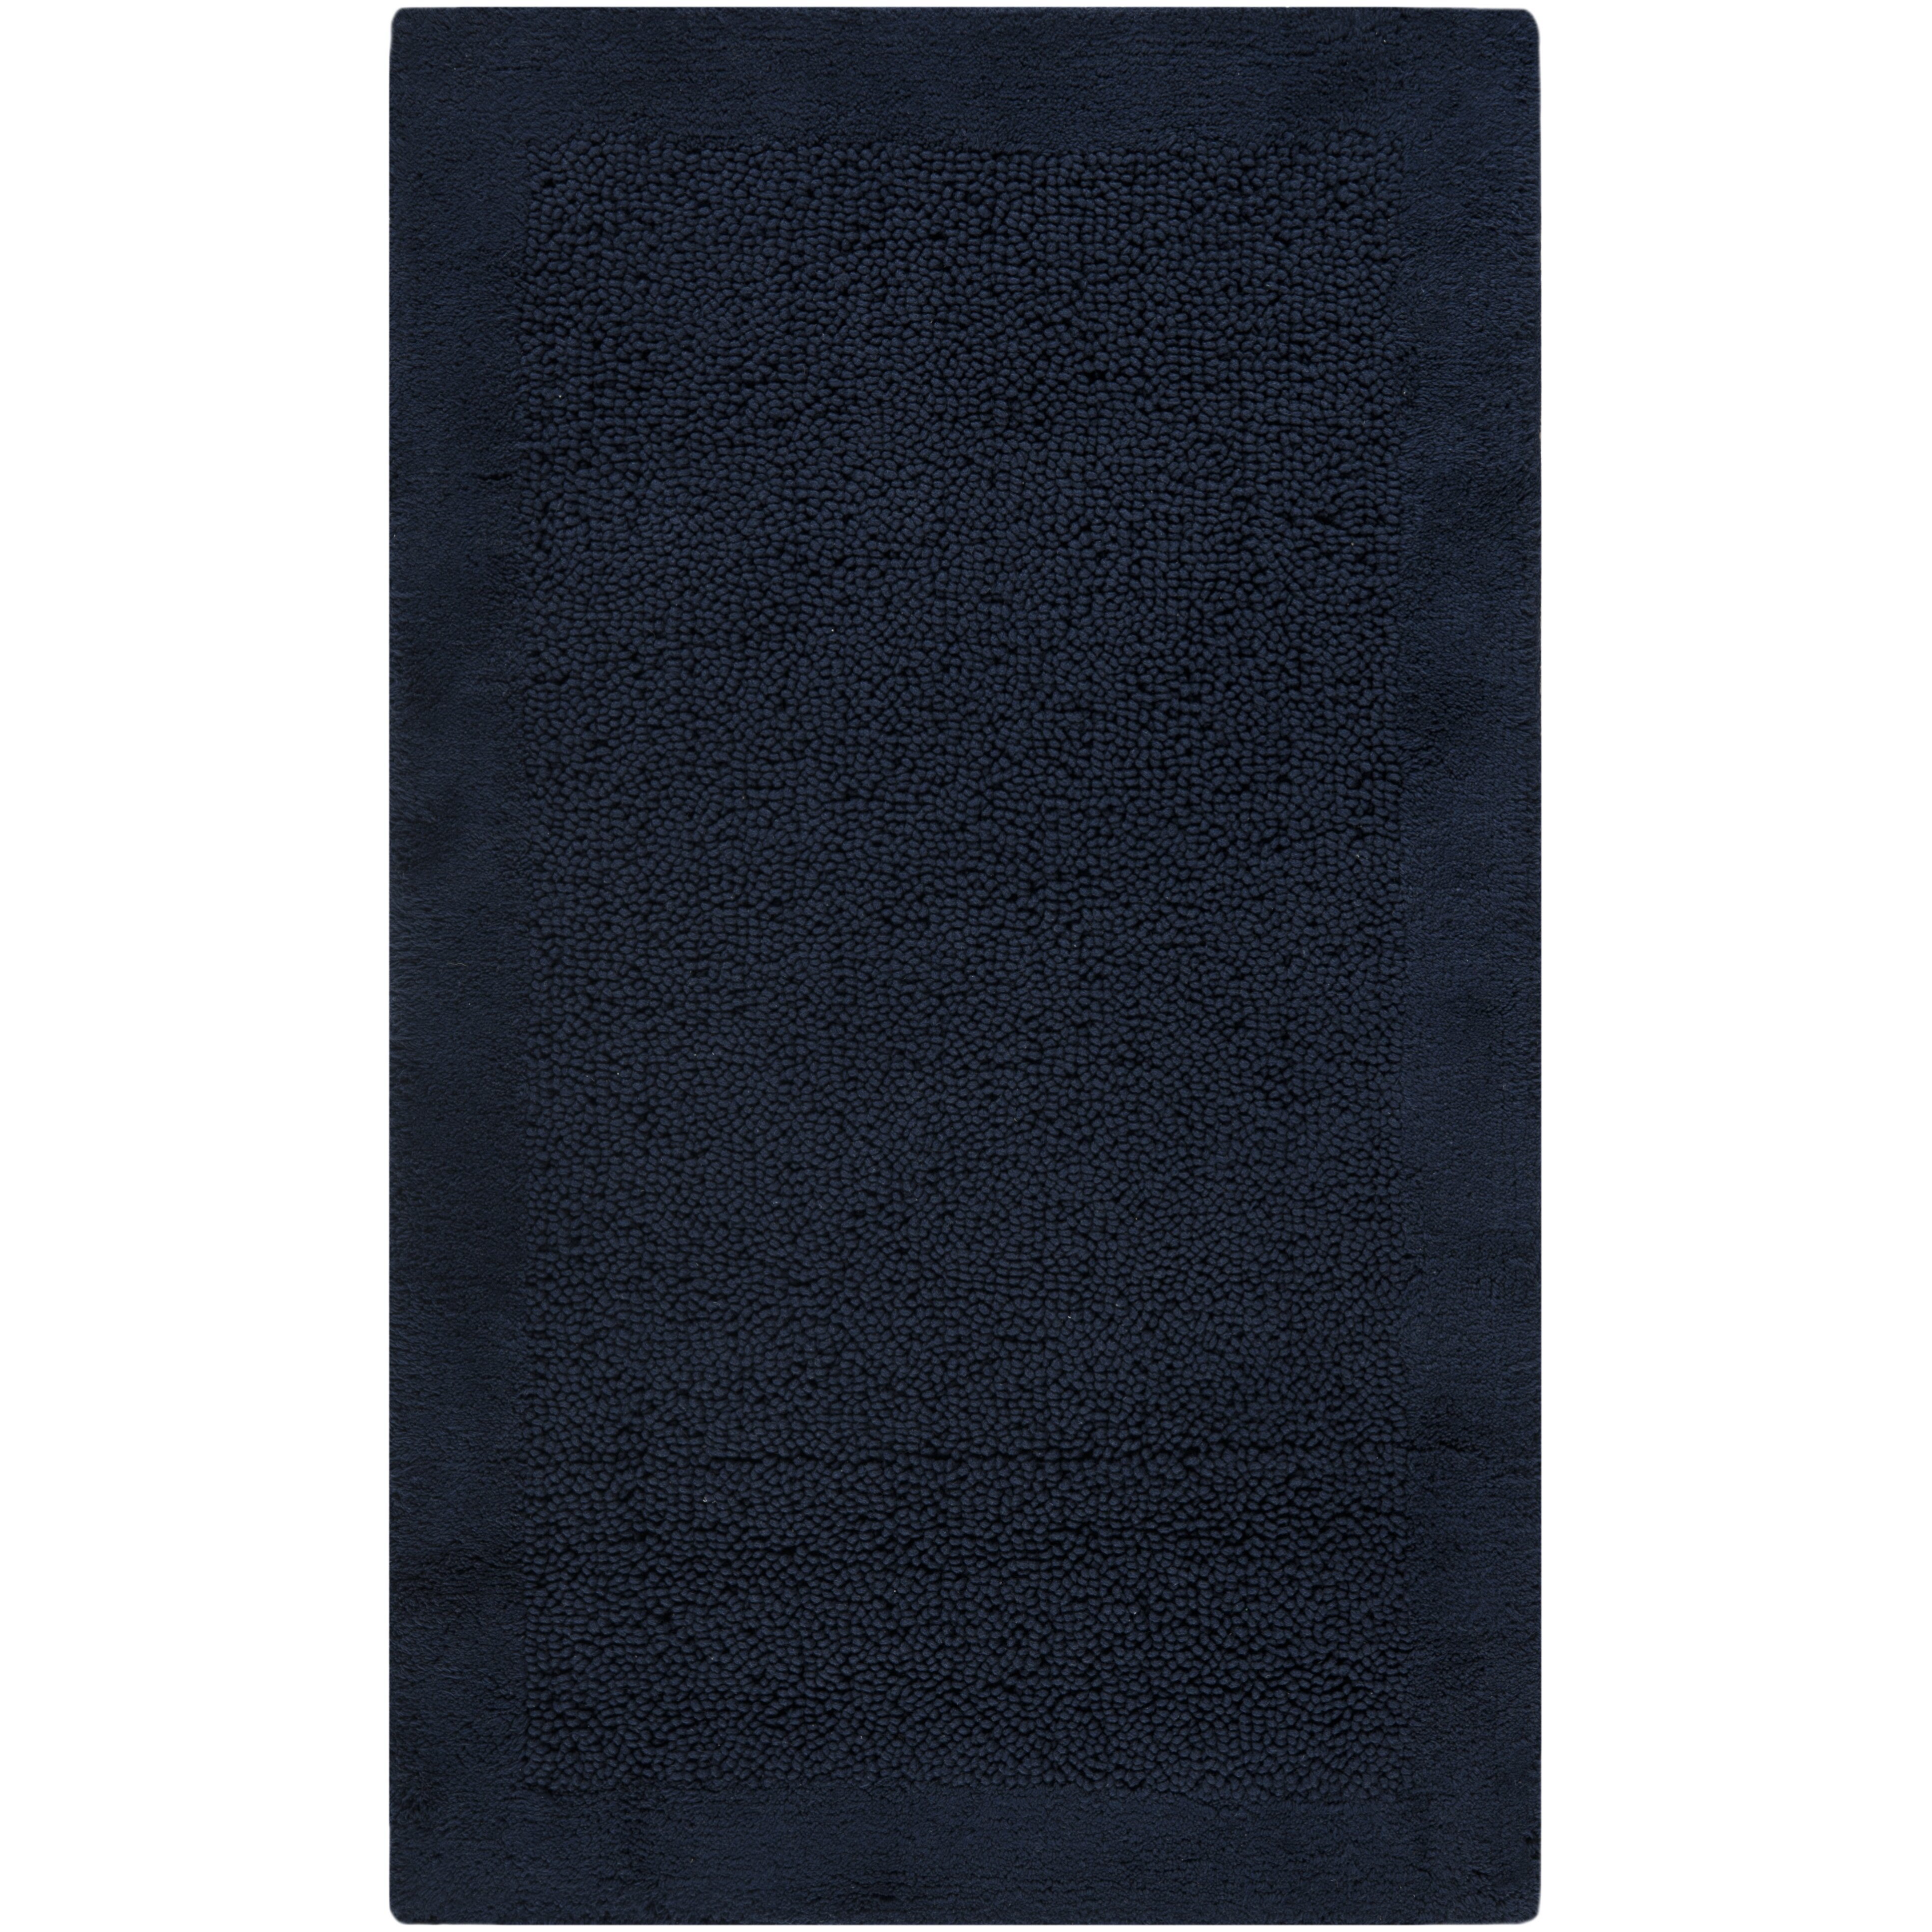 Plush master bath rug wayfair for Master bathroom rugs